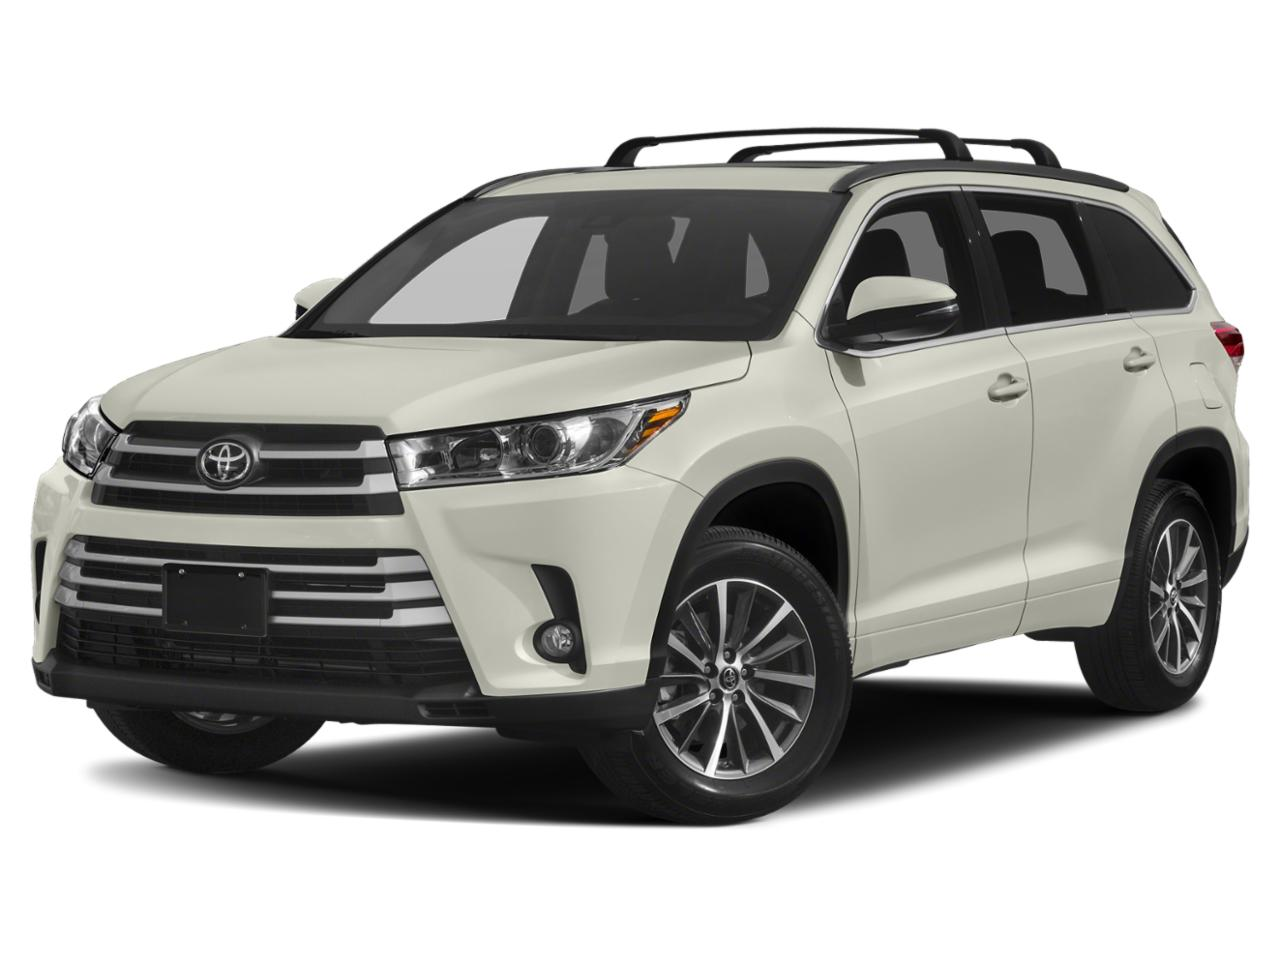 2018 Toyota Highlander Vehicle Photo in Owensboro, KY 42302